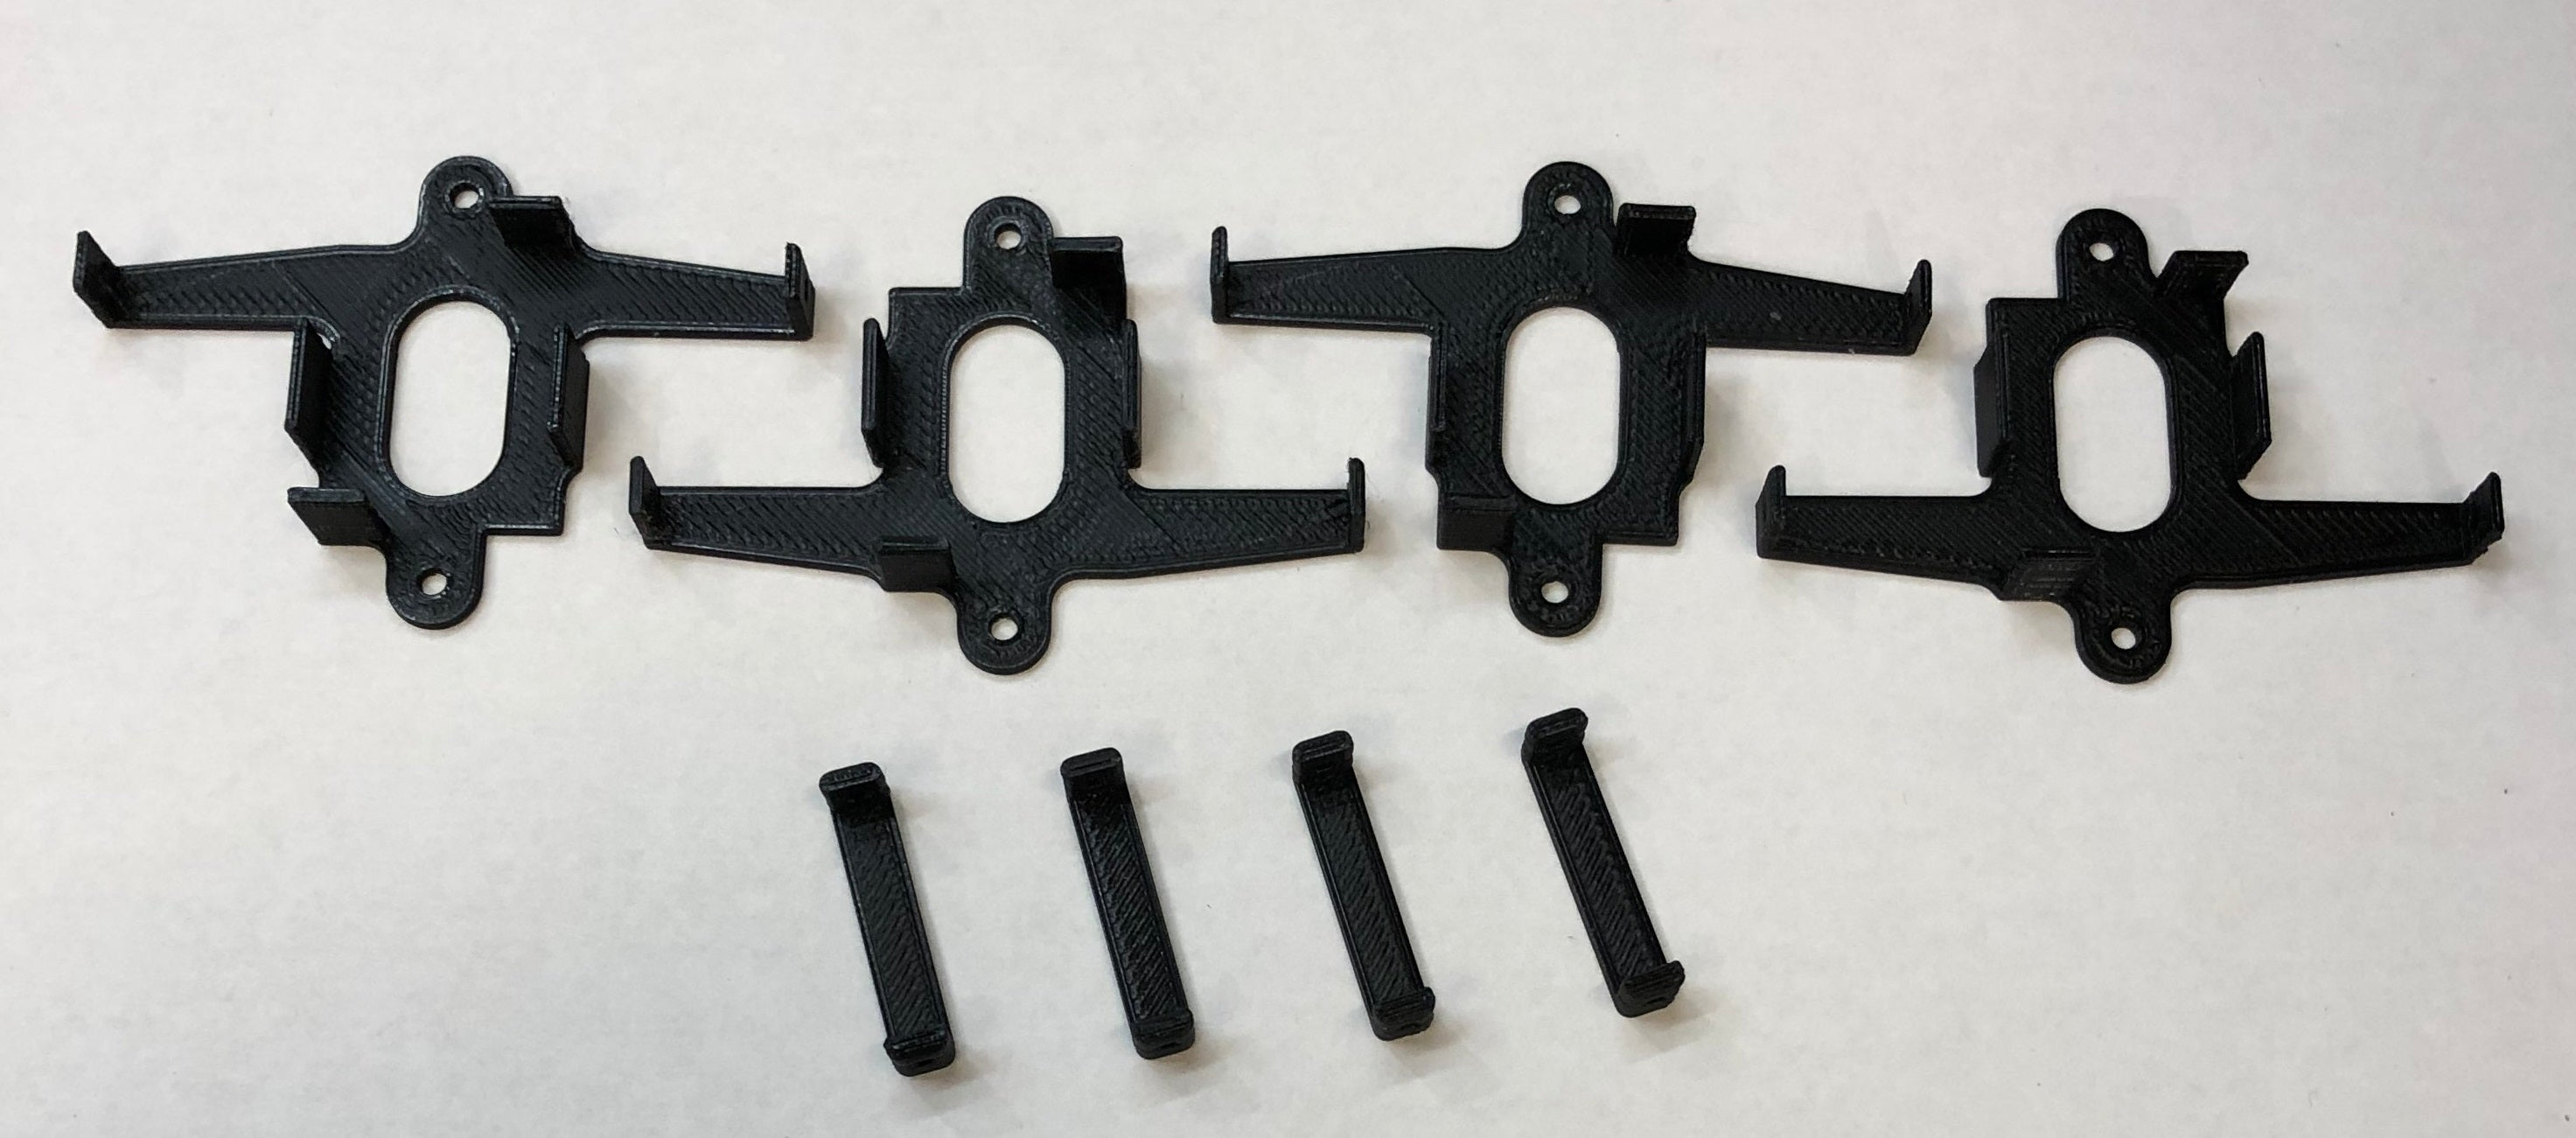 Spektrum Satellite RX Mounting Accessories